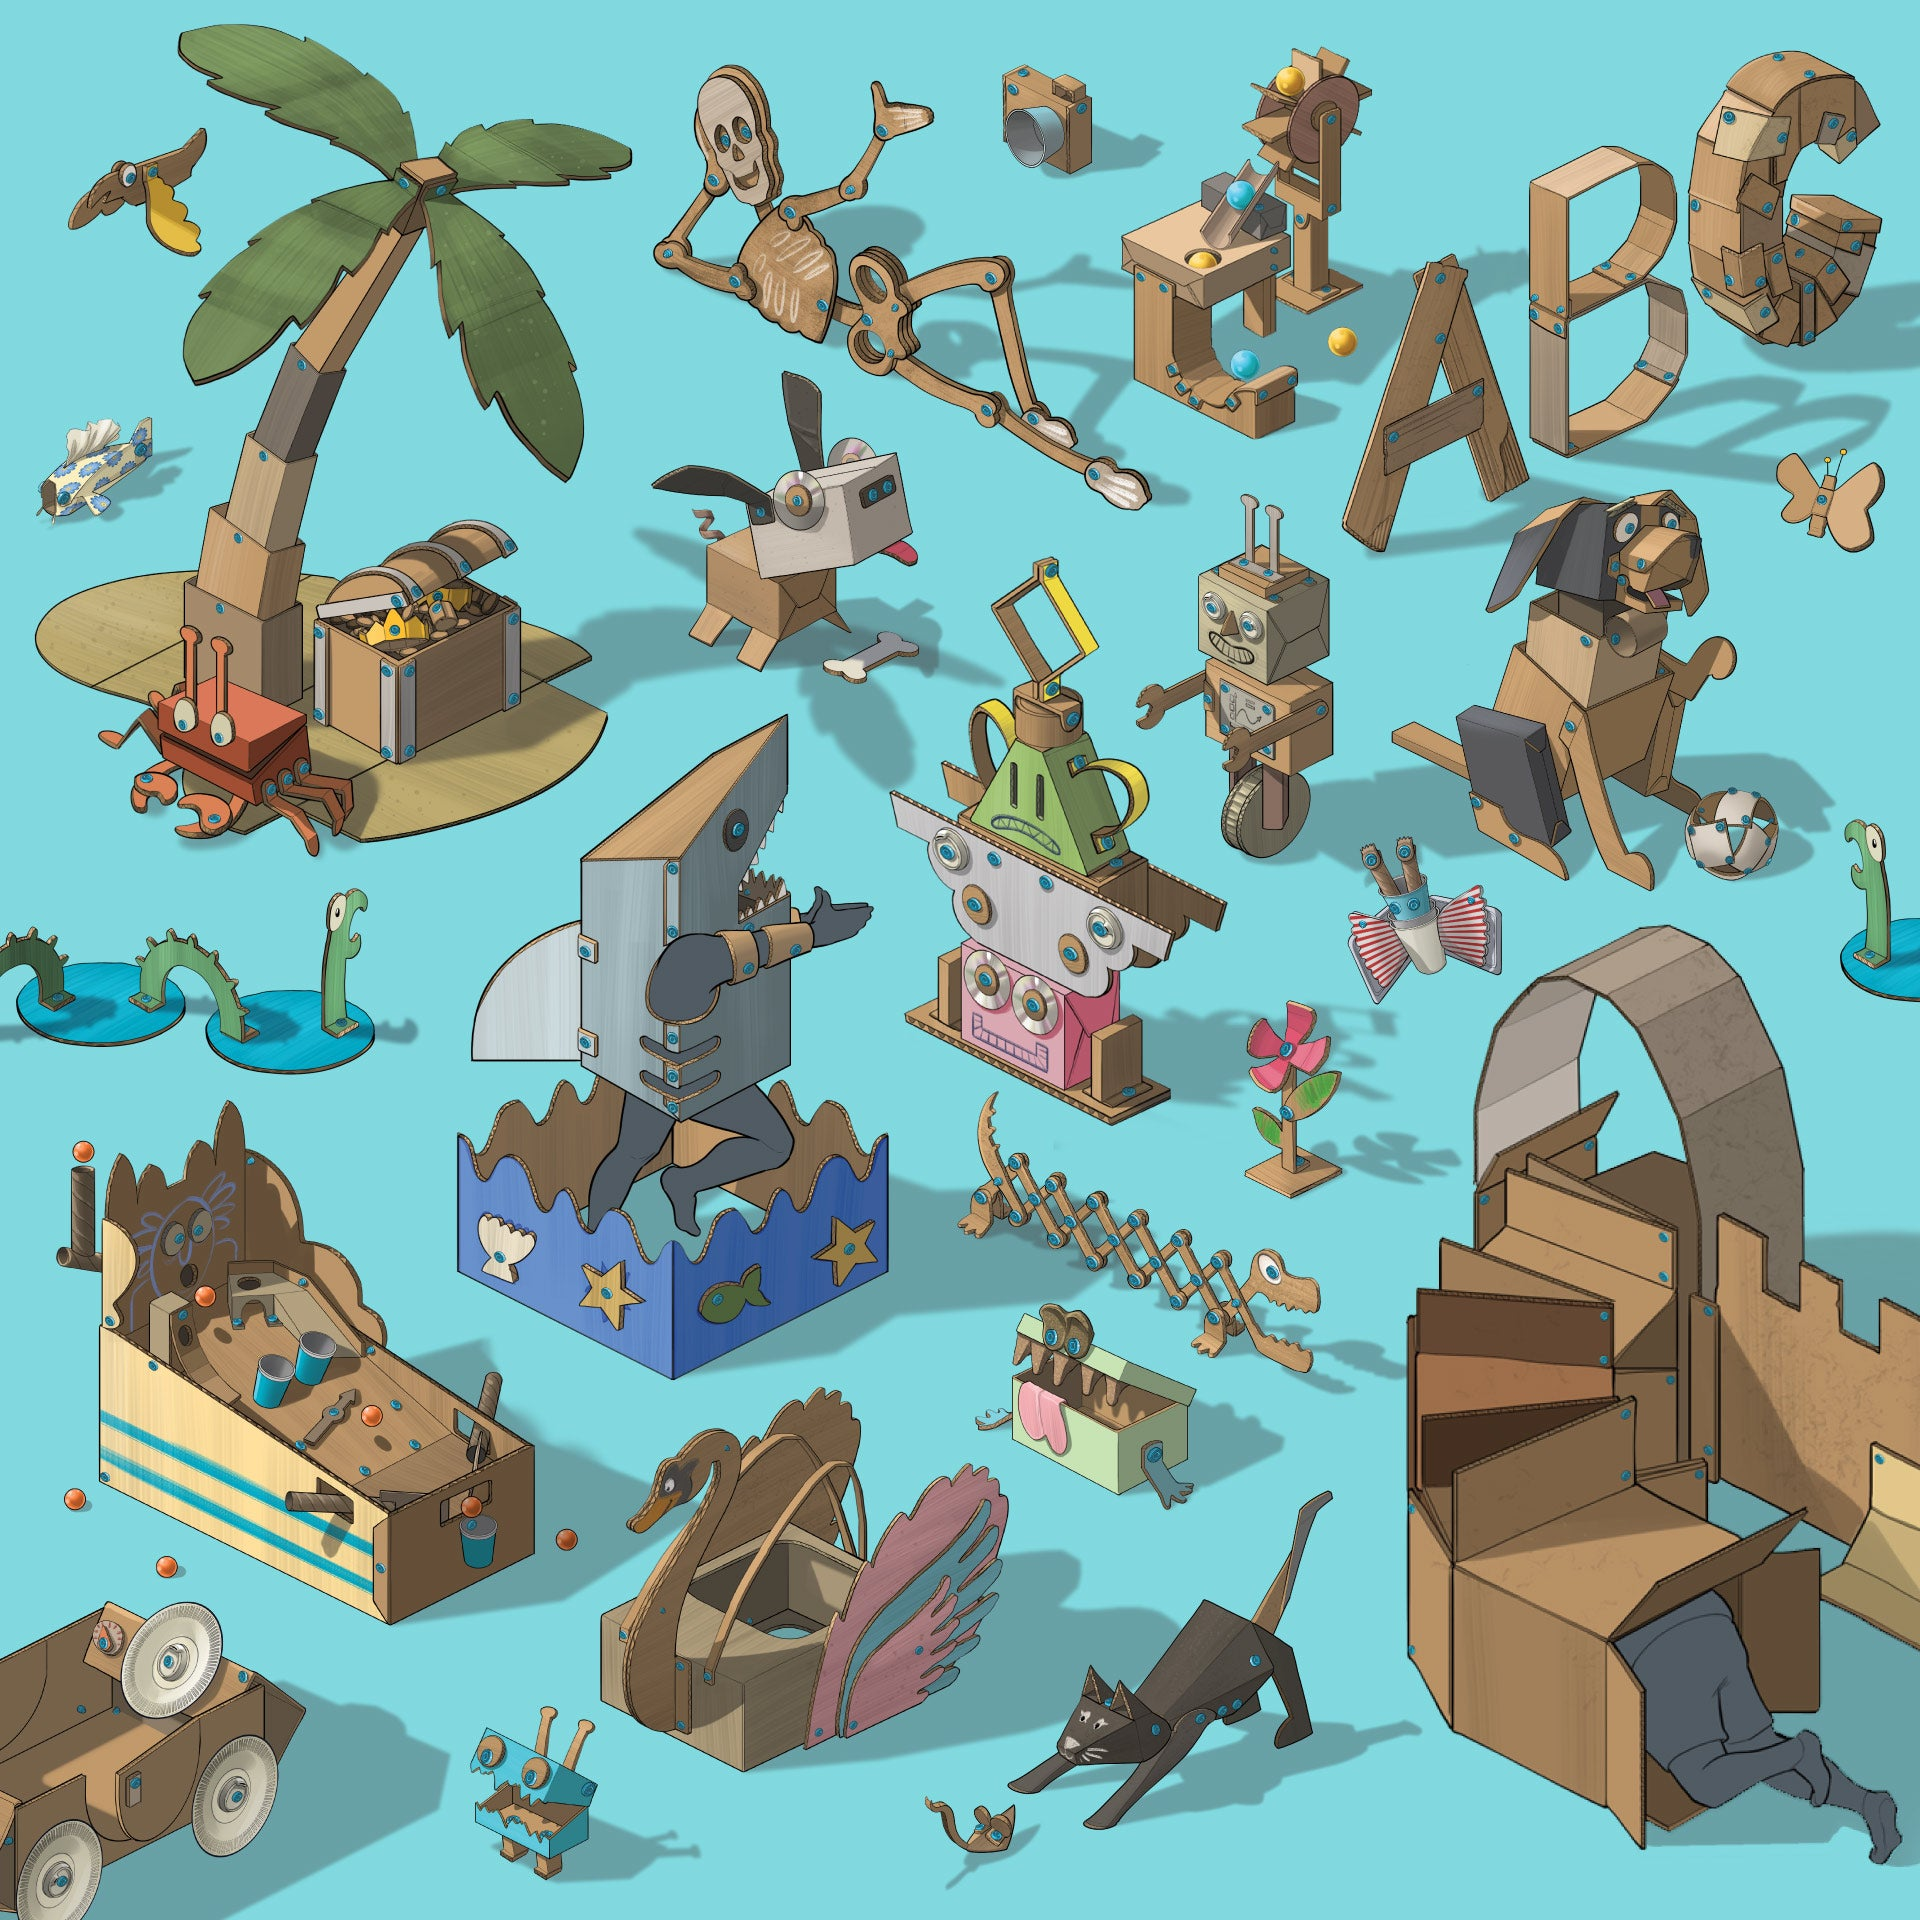 Illustrated world of Makedo cardboard creations - EXPLORE Kit.